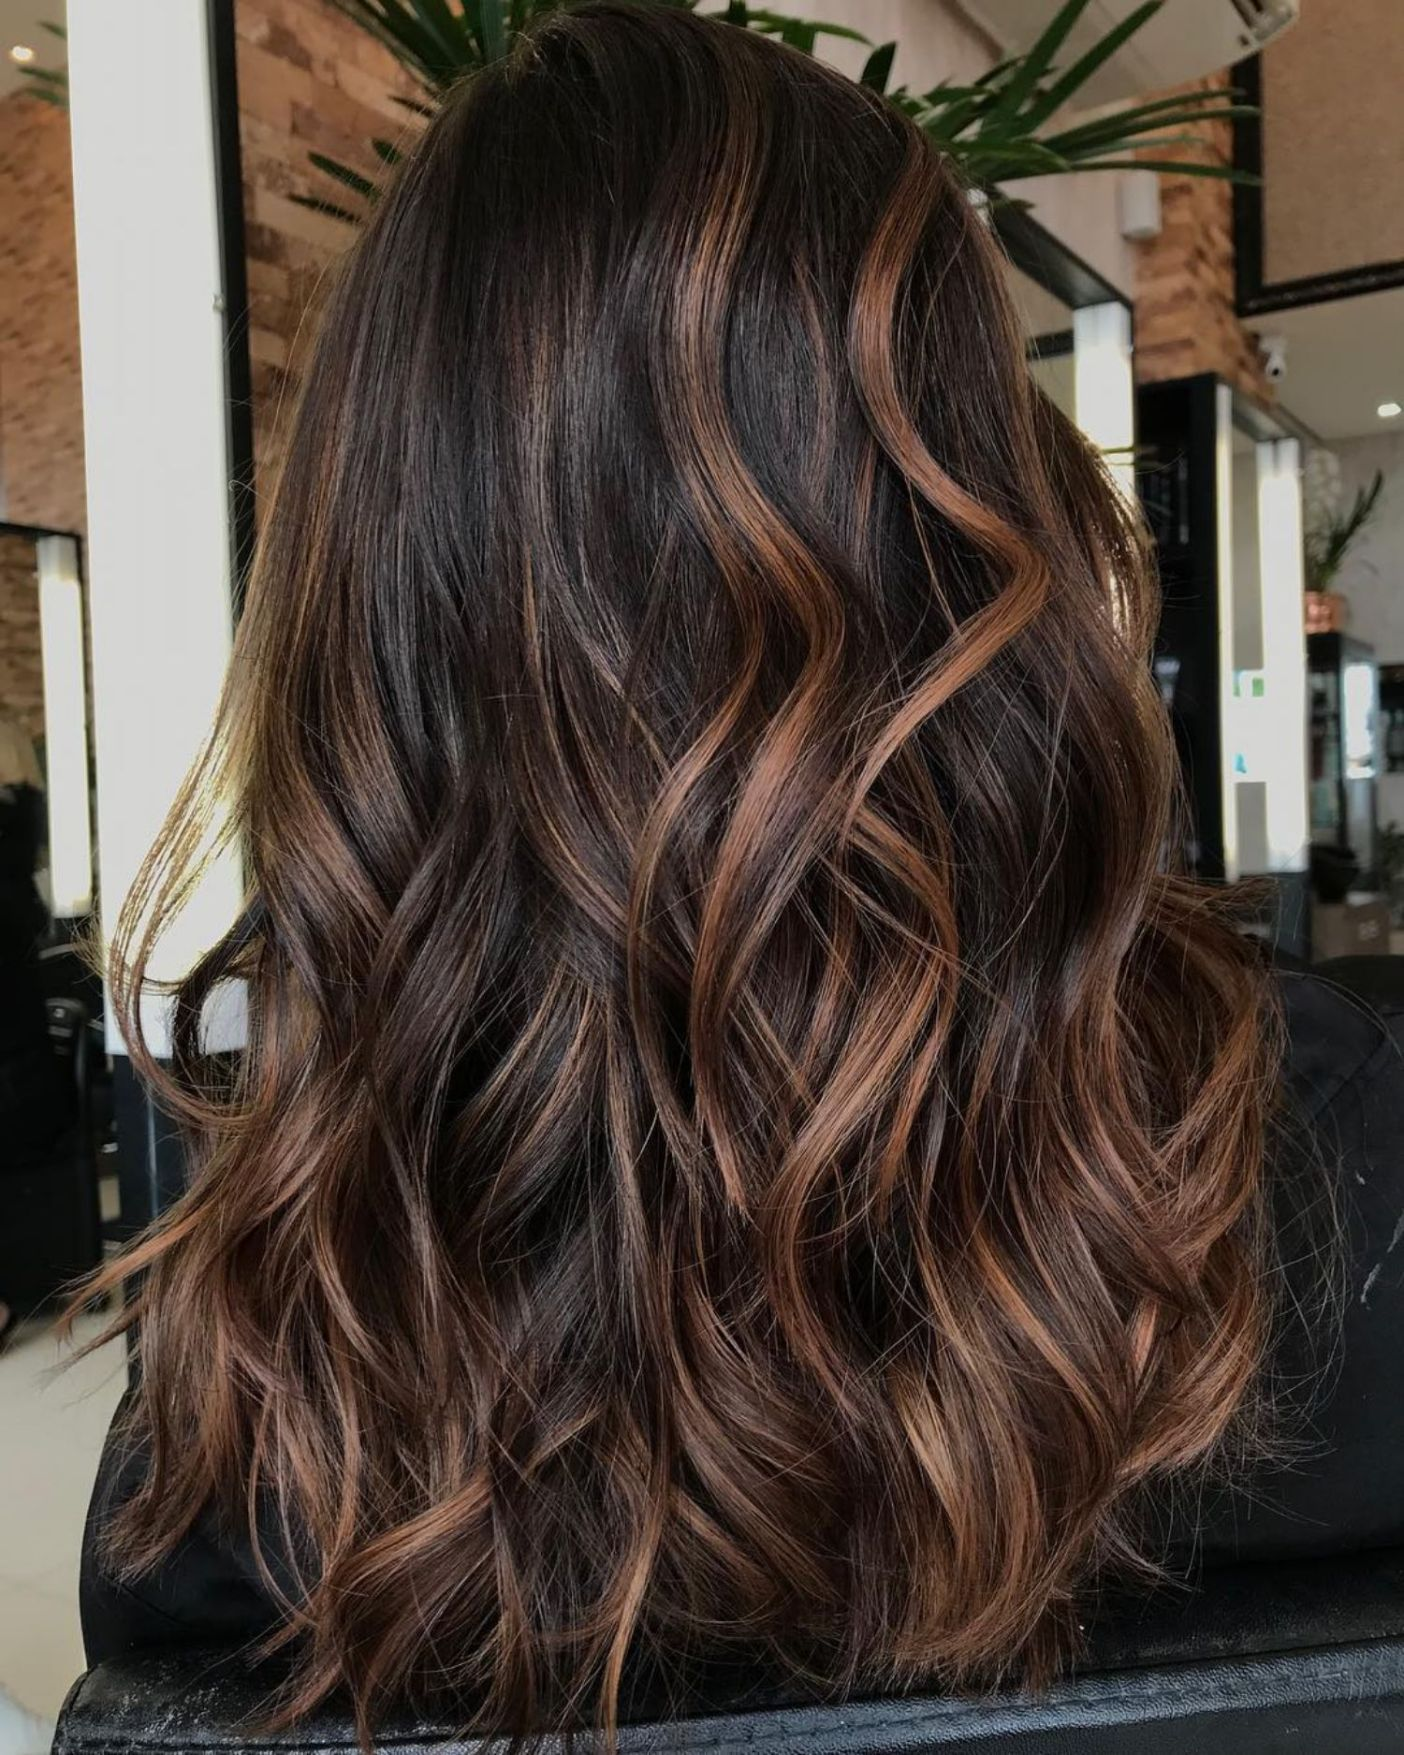 60 Hairstyles Featuring Dark Brown Hair With Highlights Brown Hair With Highlights Hair Highlights Fall Hair Color For Brunettes